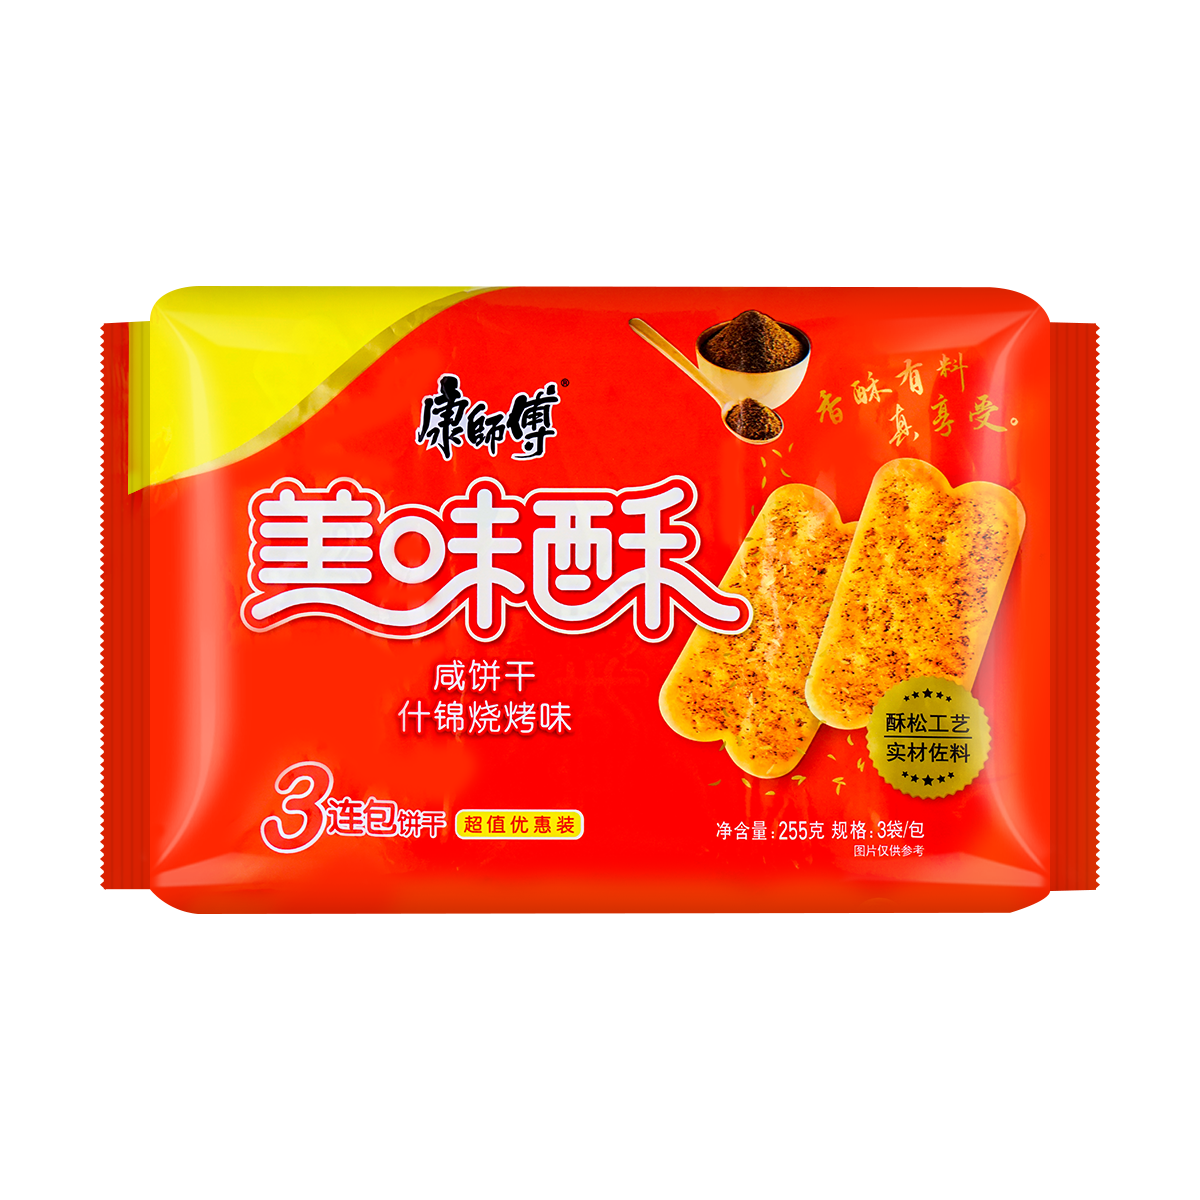 Yamibuy.com:Customer reviews:MASTER KONG Delicious Crispy Assorted BBQ Flavor 255g